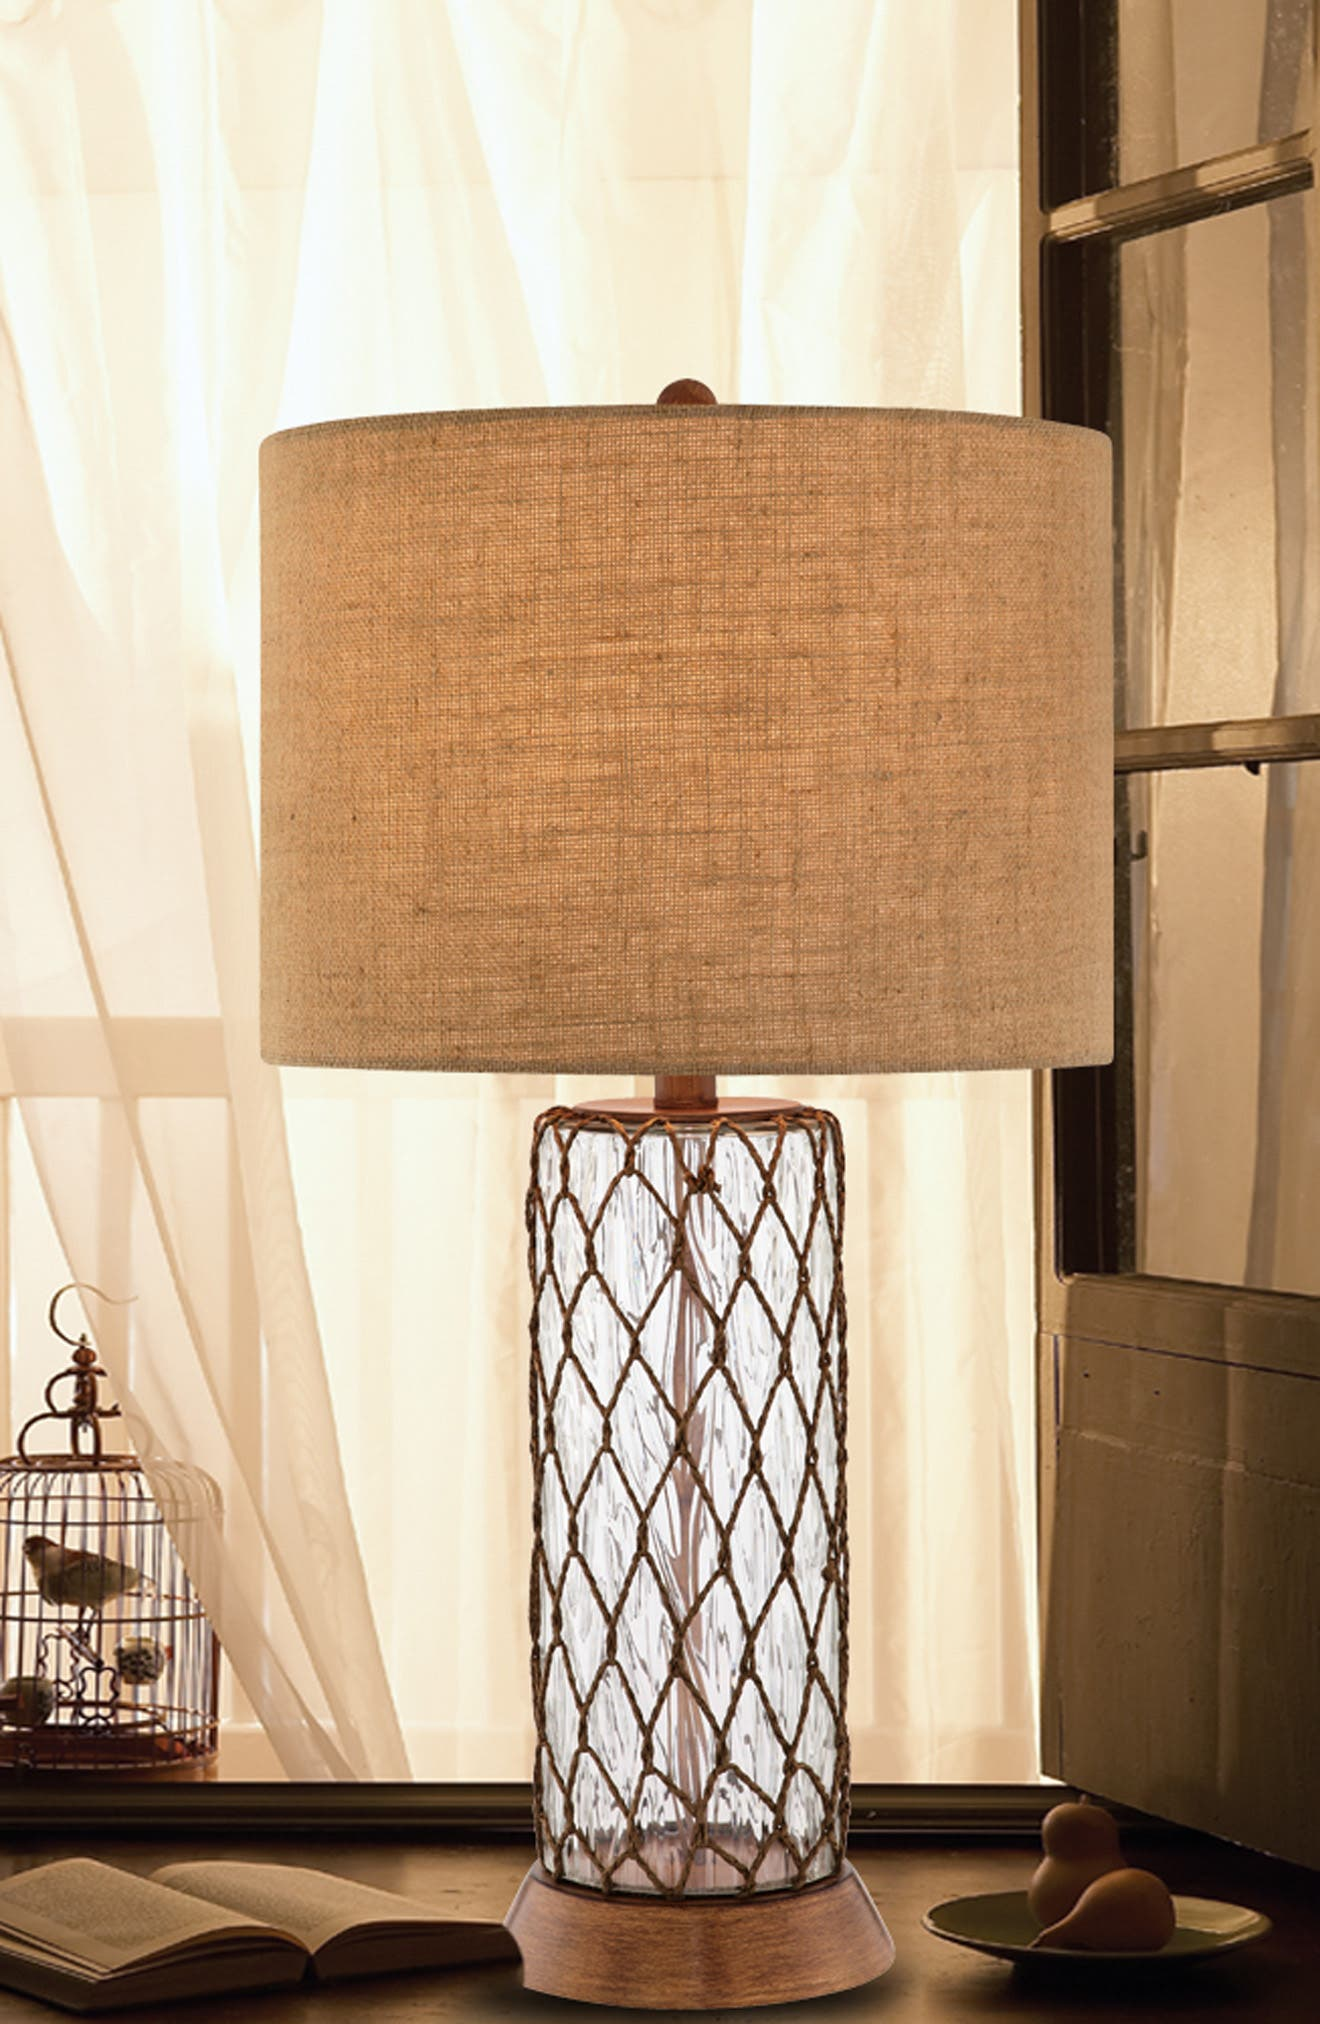 Clear Glass Table Lamp,                             Alternate thumbnail 3, color,                             250